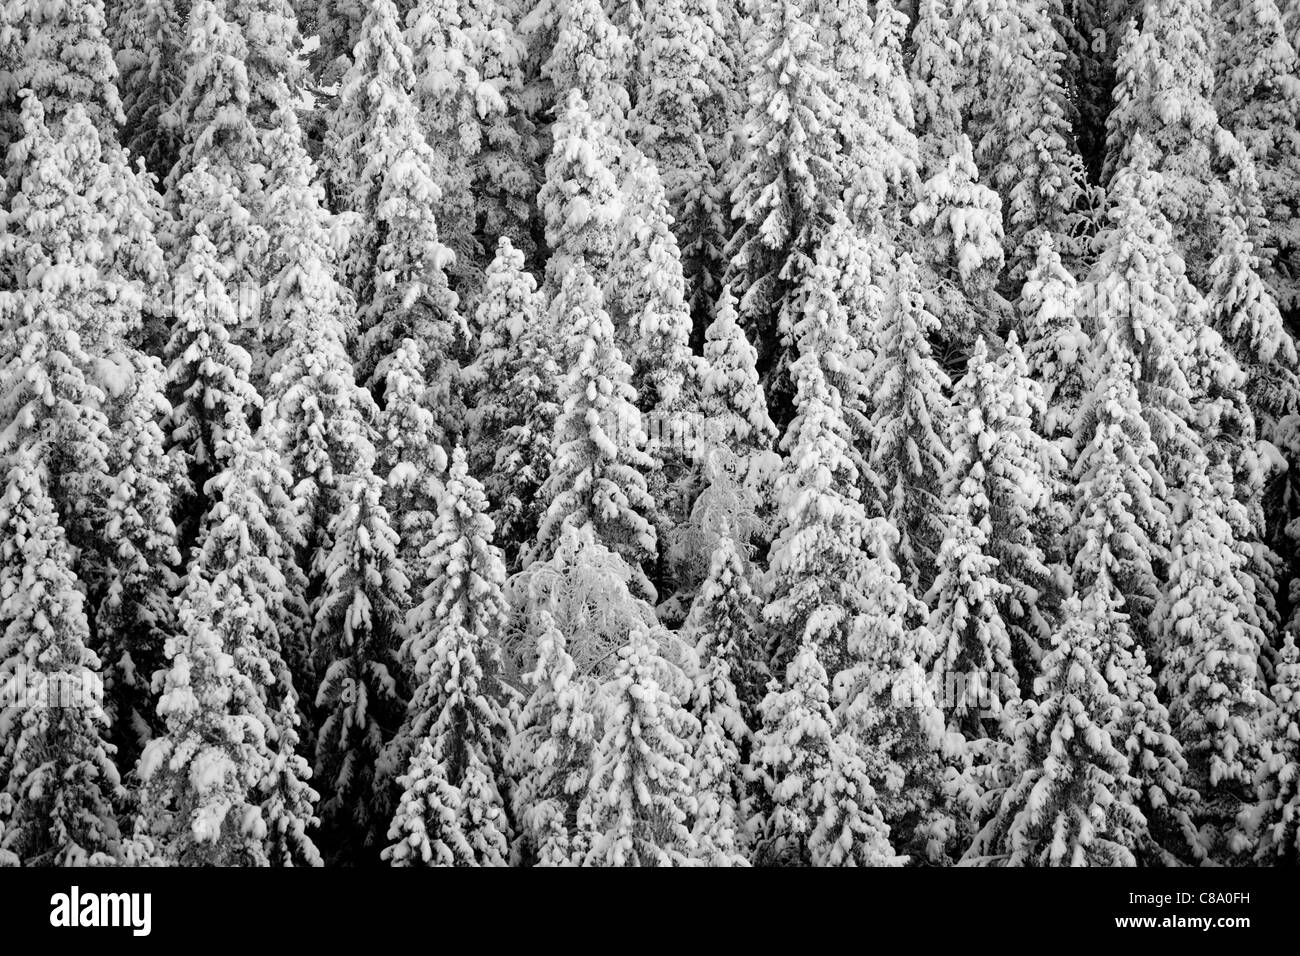 High angle view of dense boreal spruce ( picea abies ) forest at Winter (-25C) , Finland - Stock Image